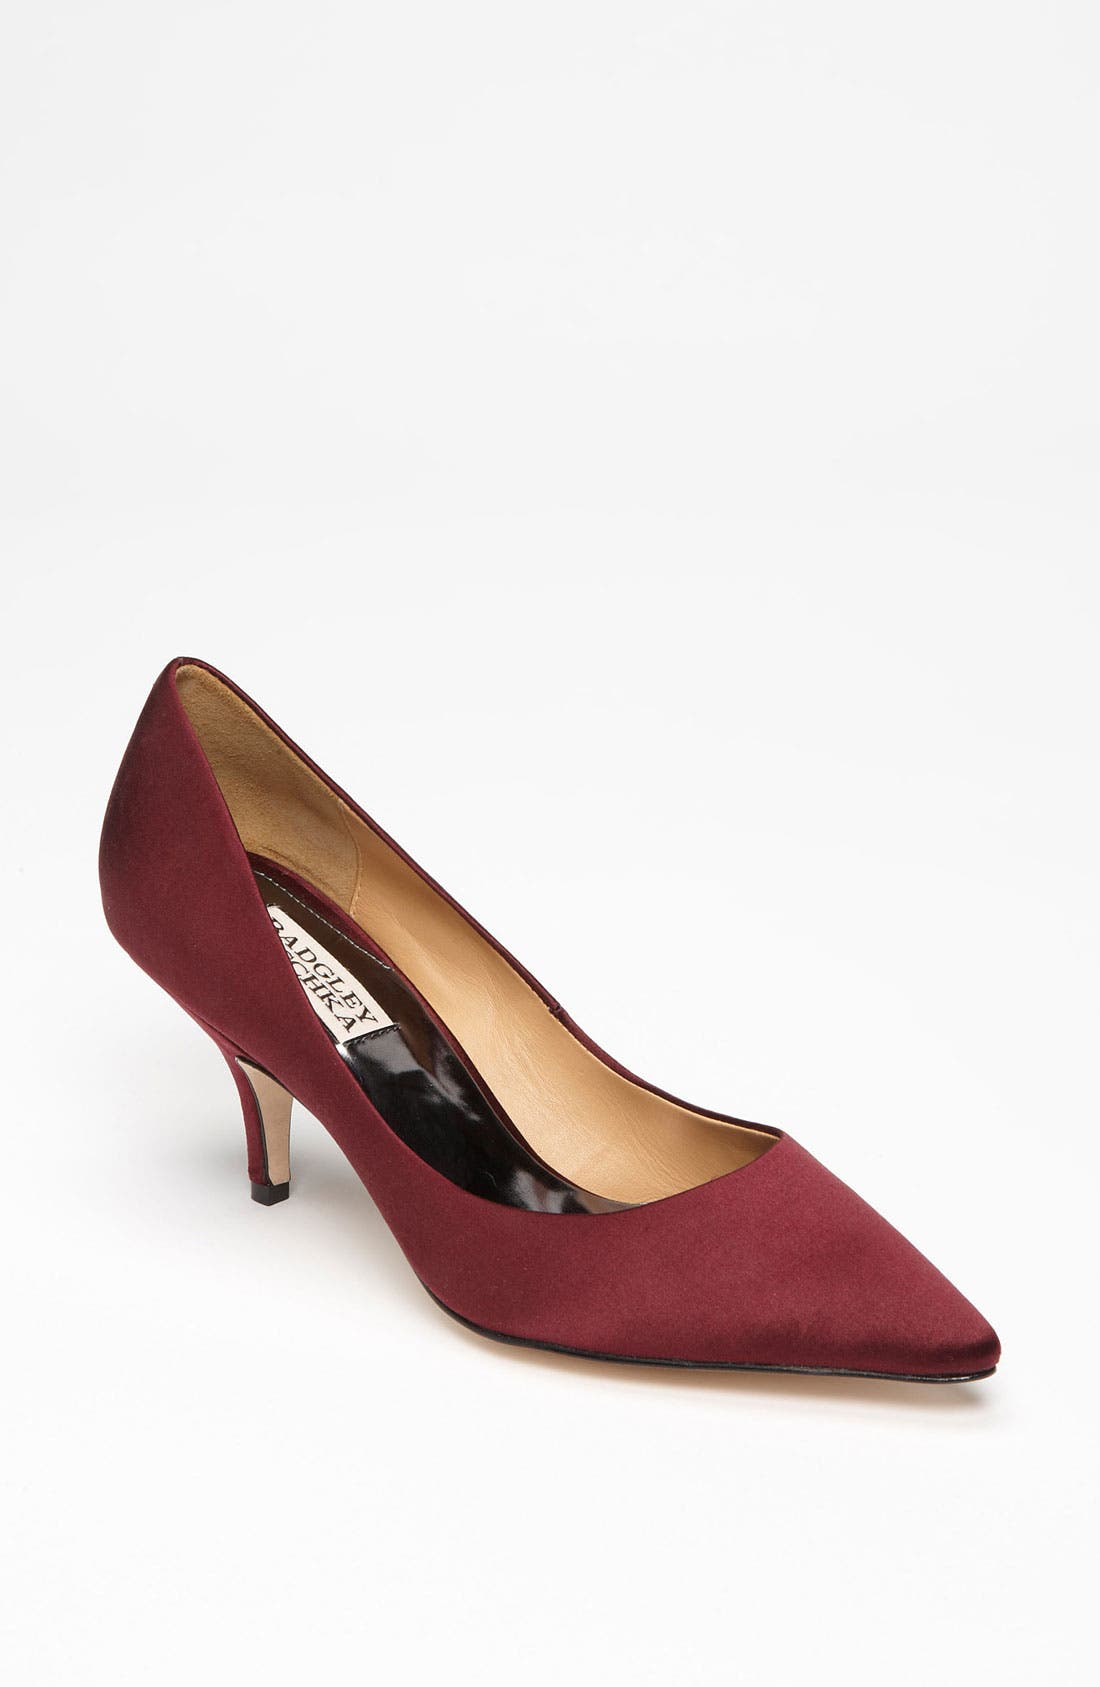 Main Image - Badgley Mischka 'Monika II' Pump